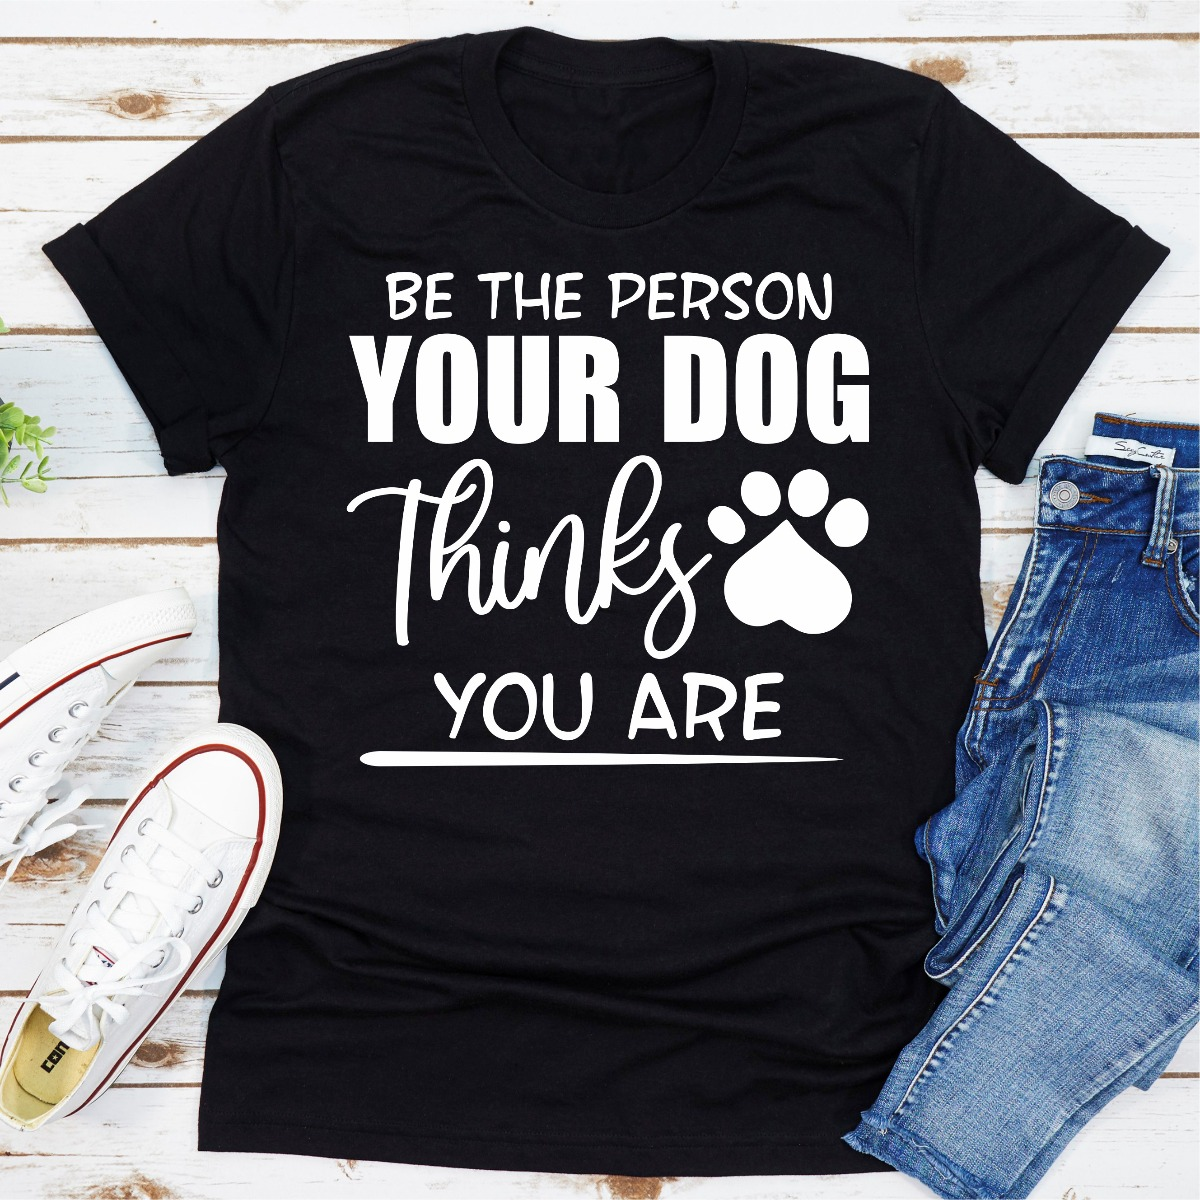 Be The Person Your Dog Thinks You Are (Black / 2Xl)